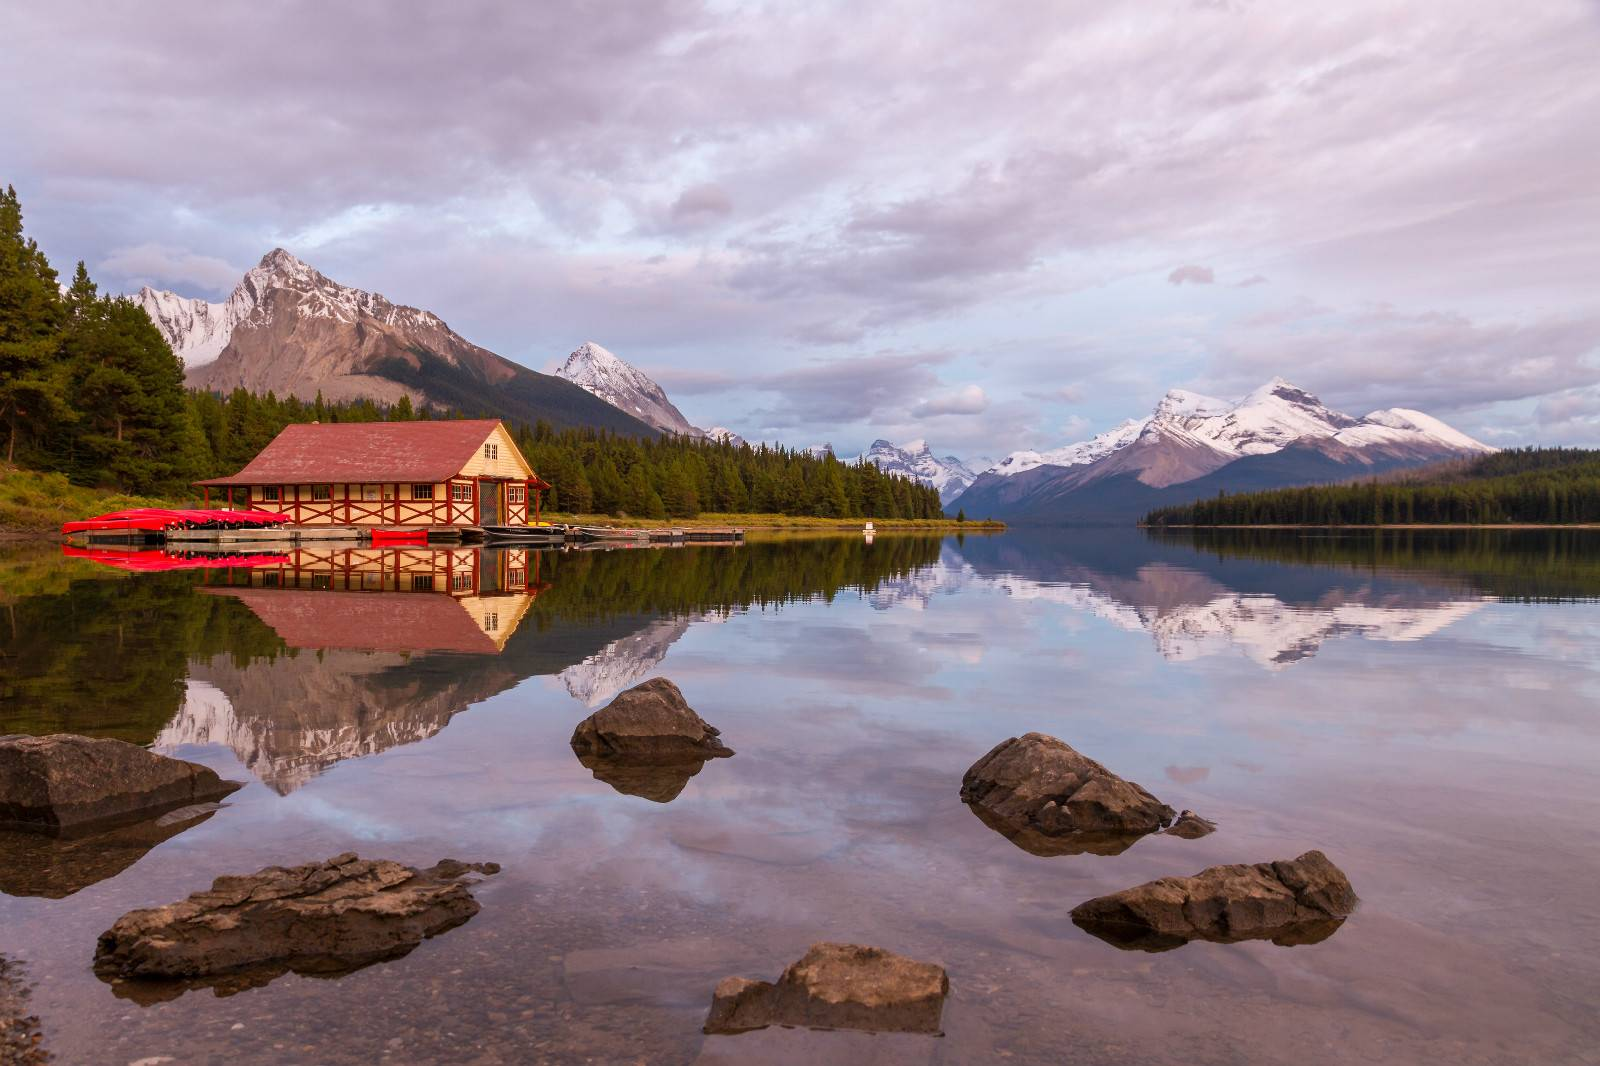 4-Day Wondrous Canadian Rockies Tour